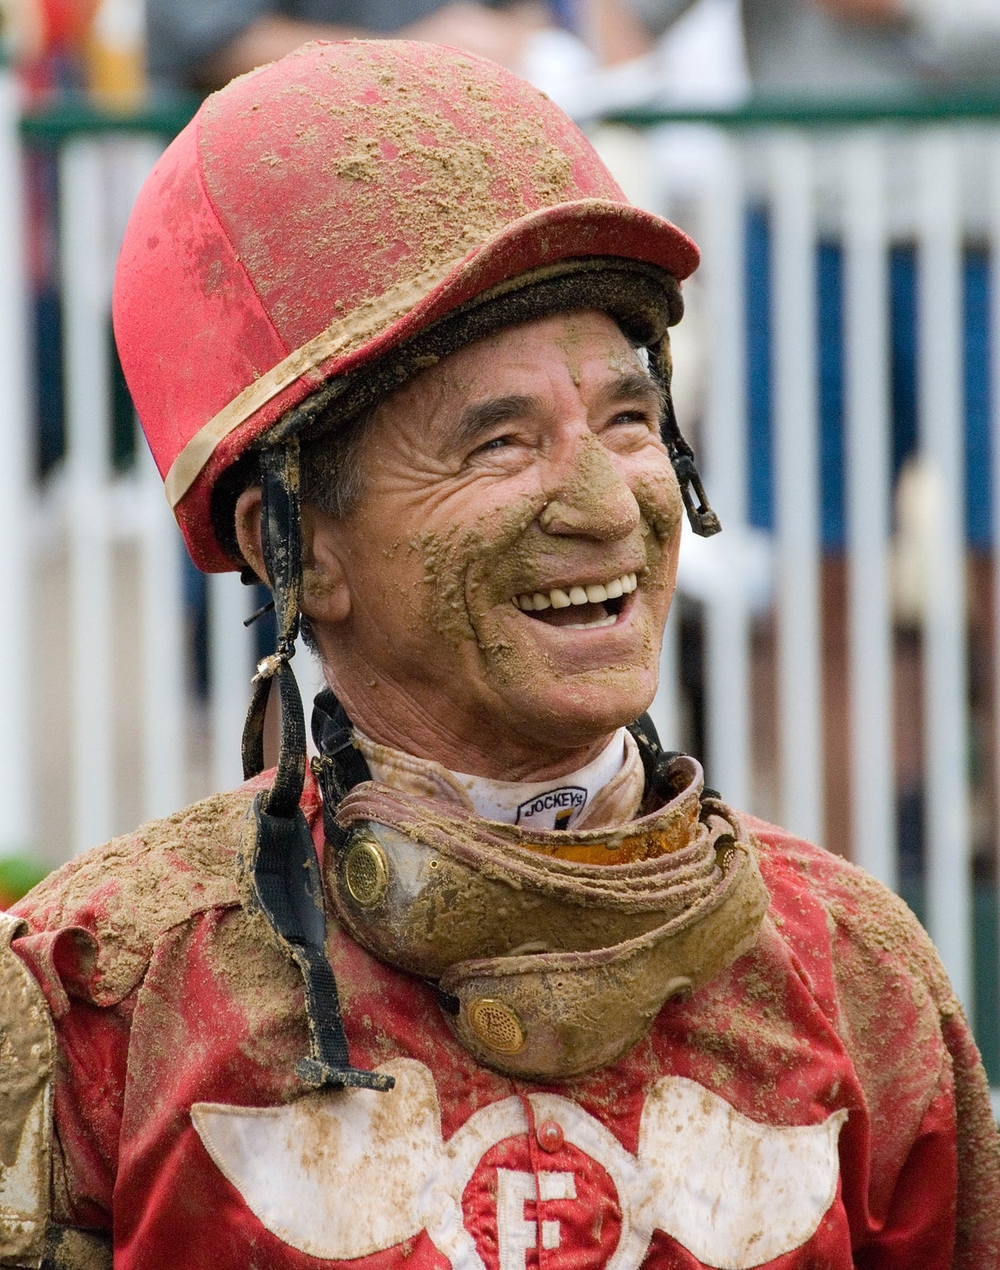 jockey Earlie Smile.jpg